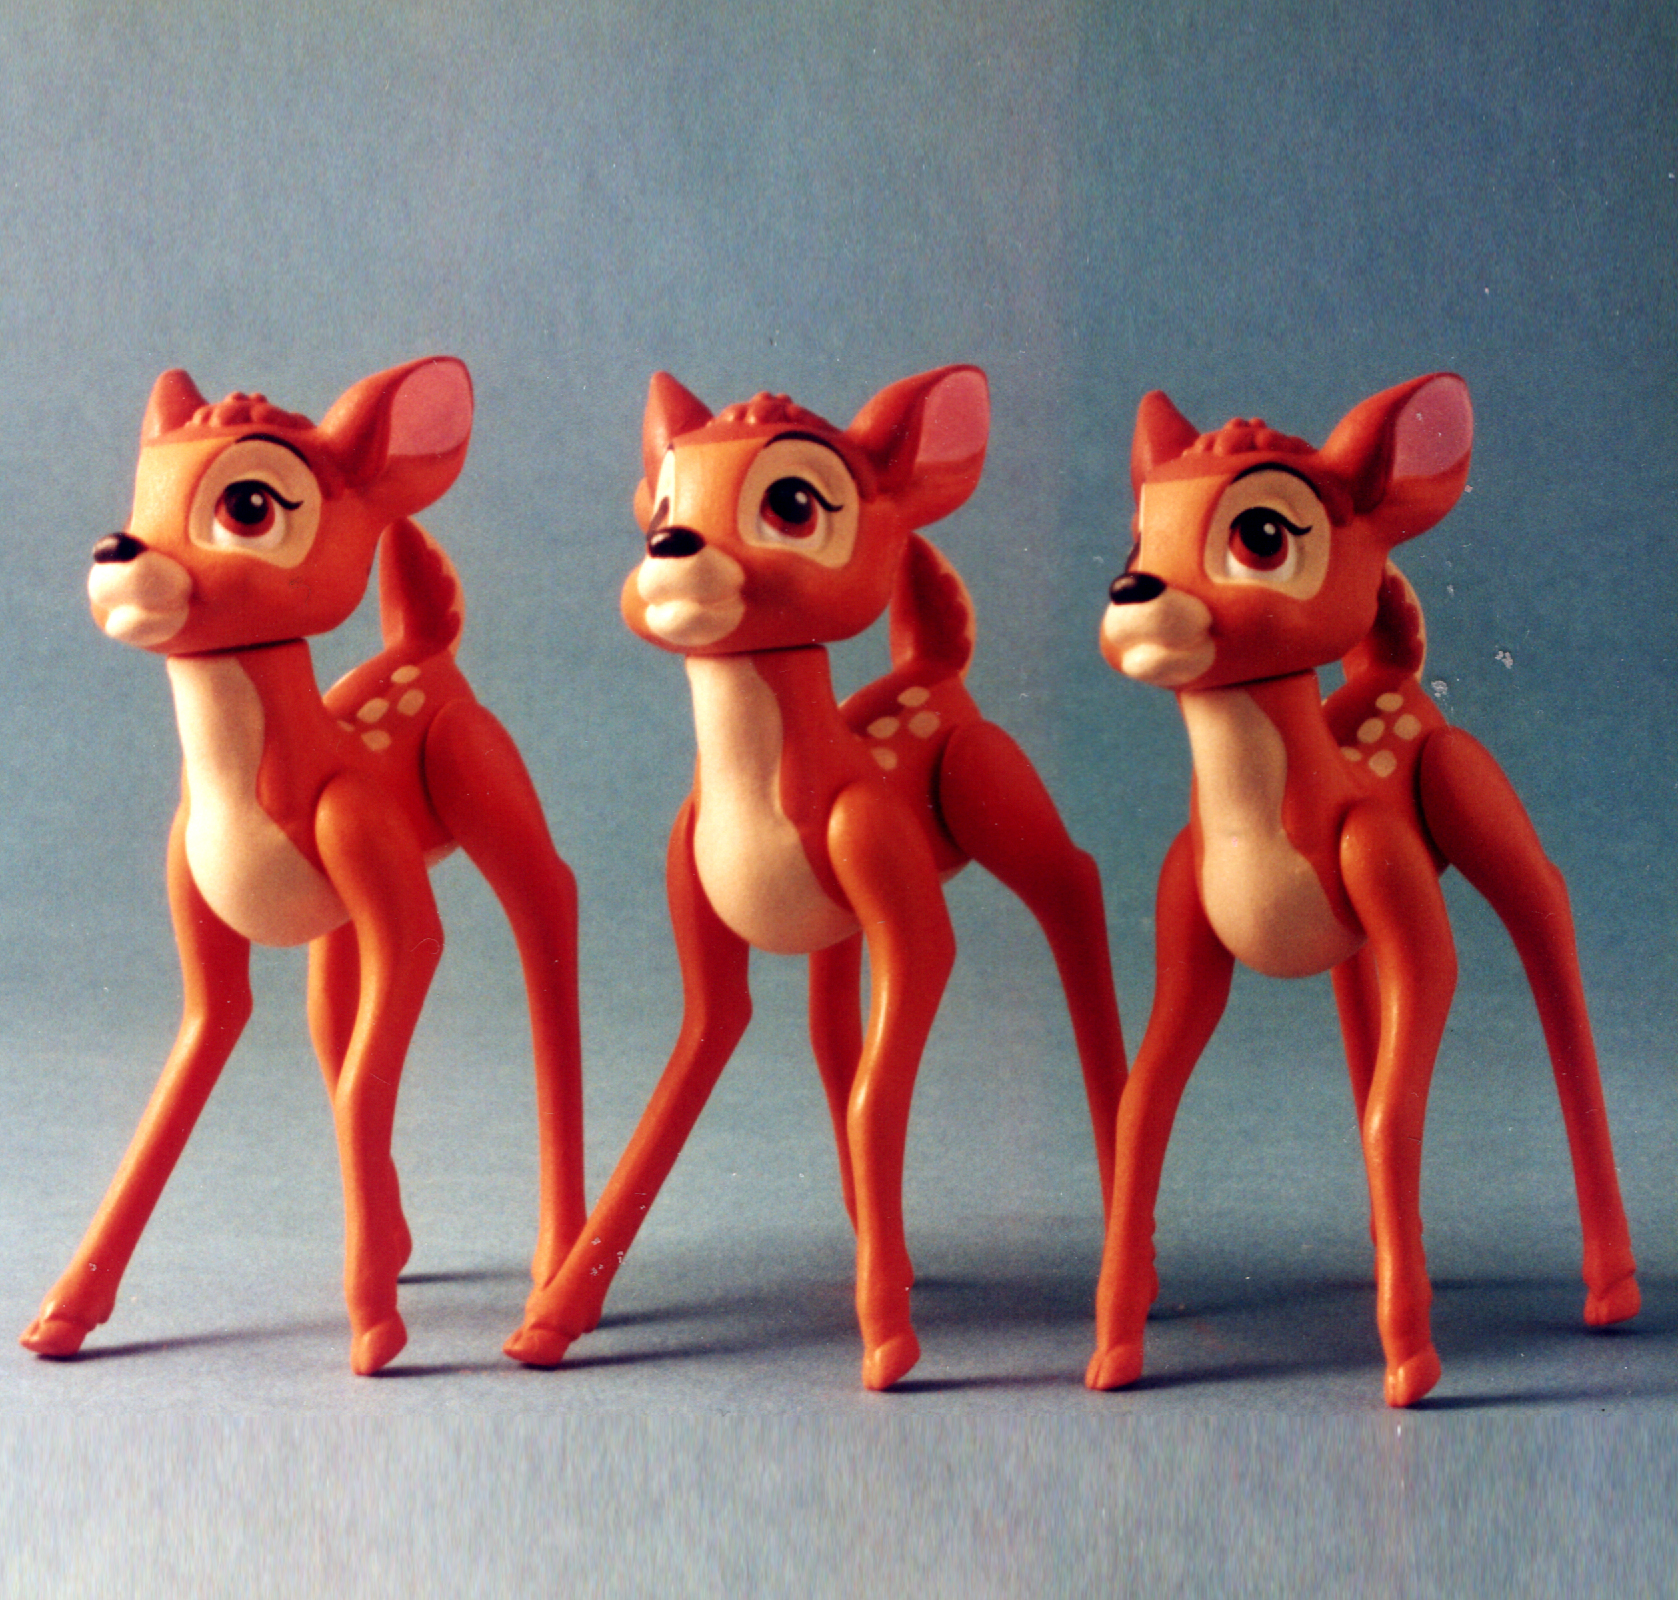 bambi for McDonald's Happy meal